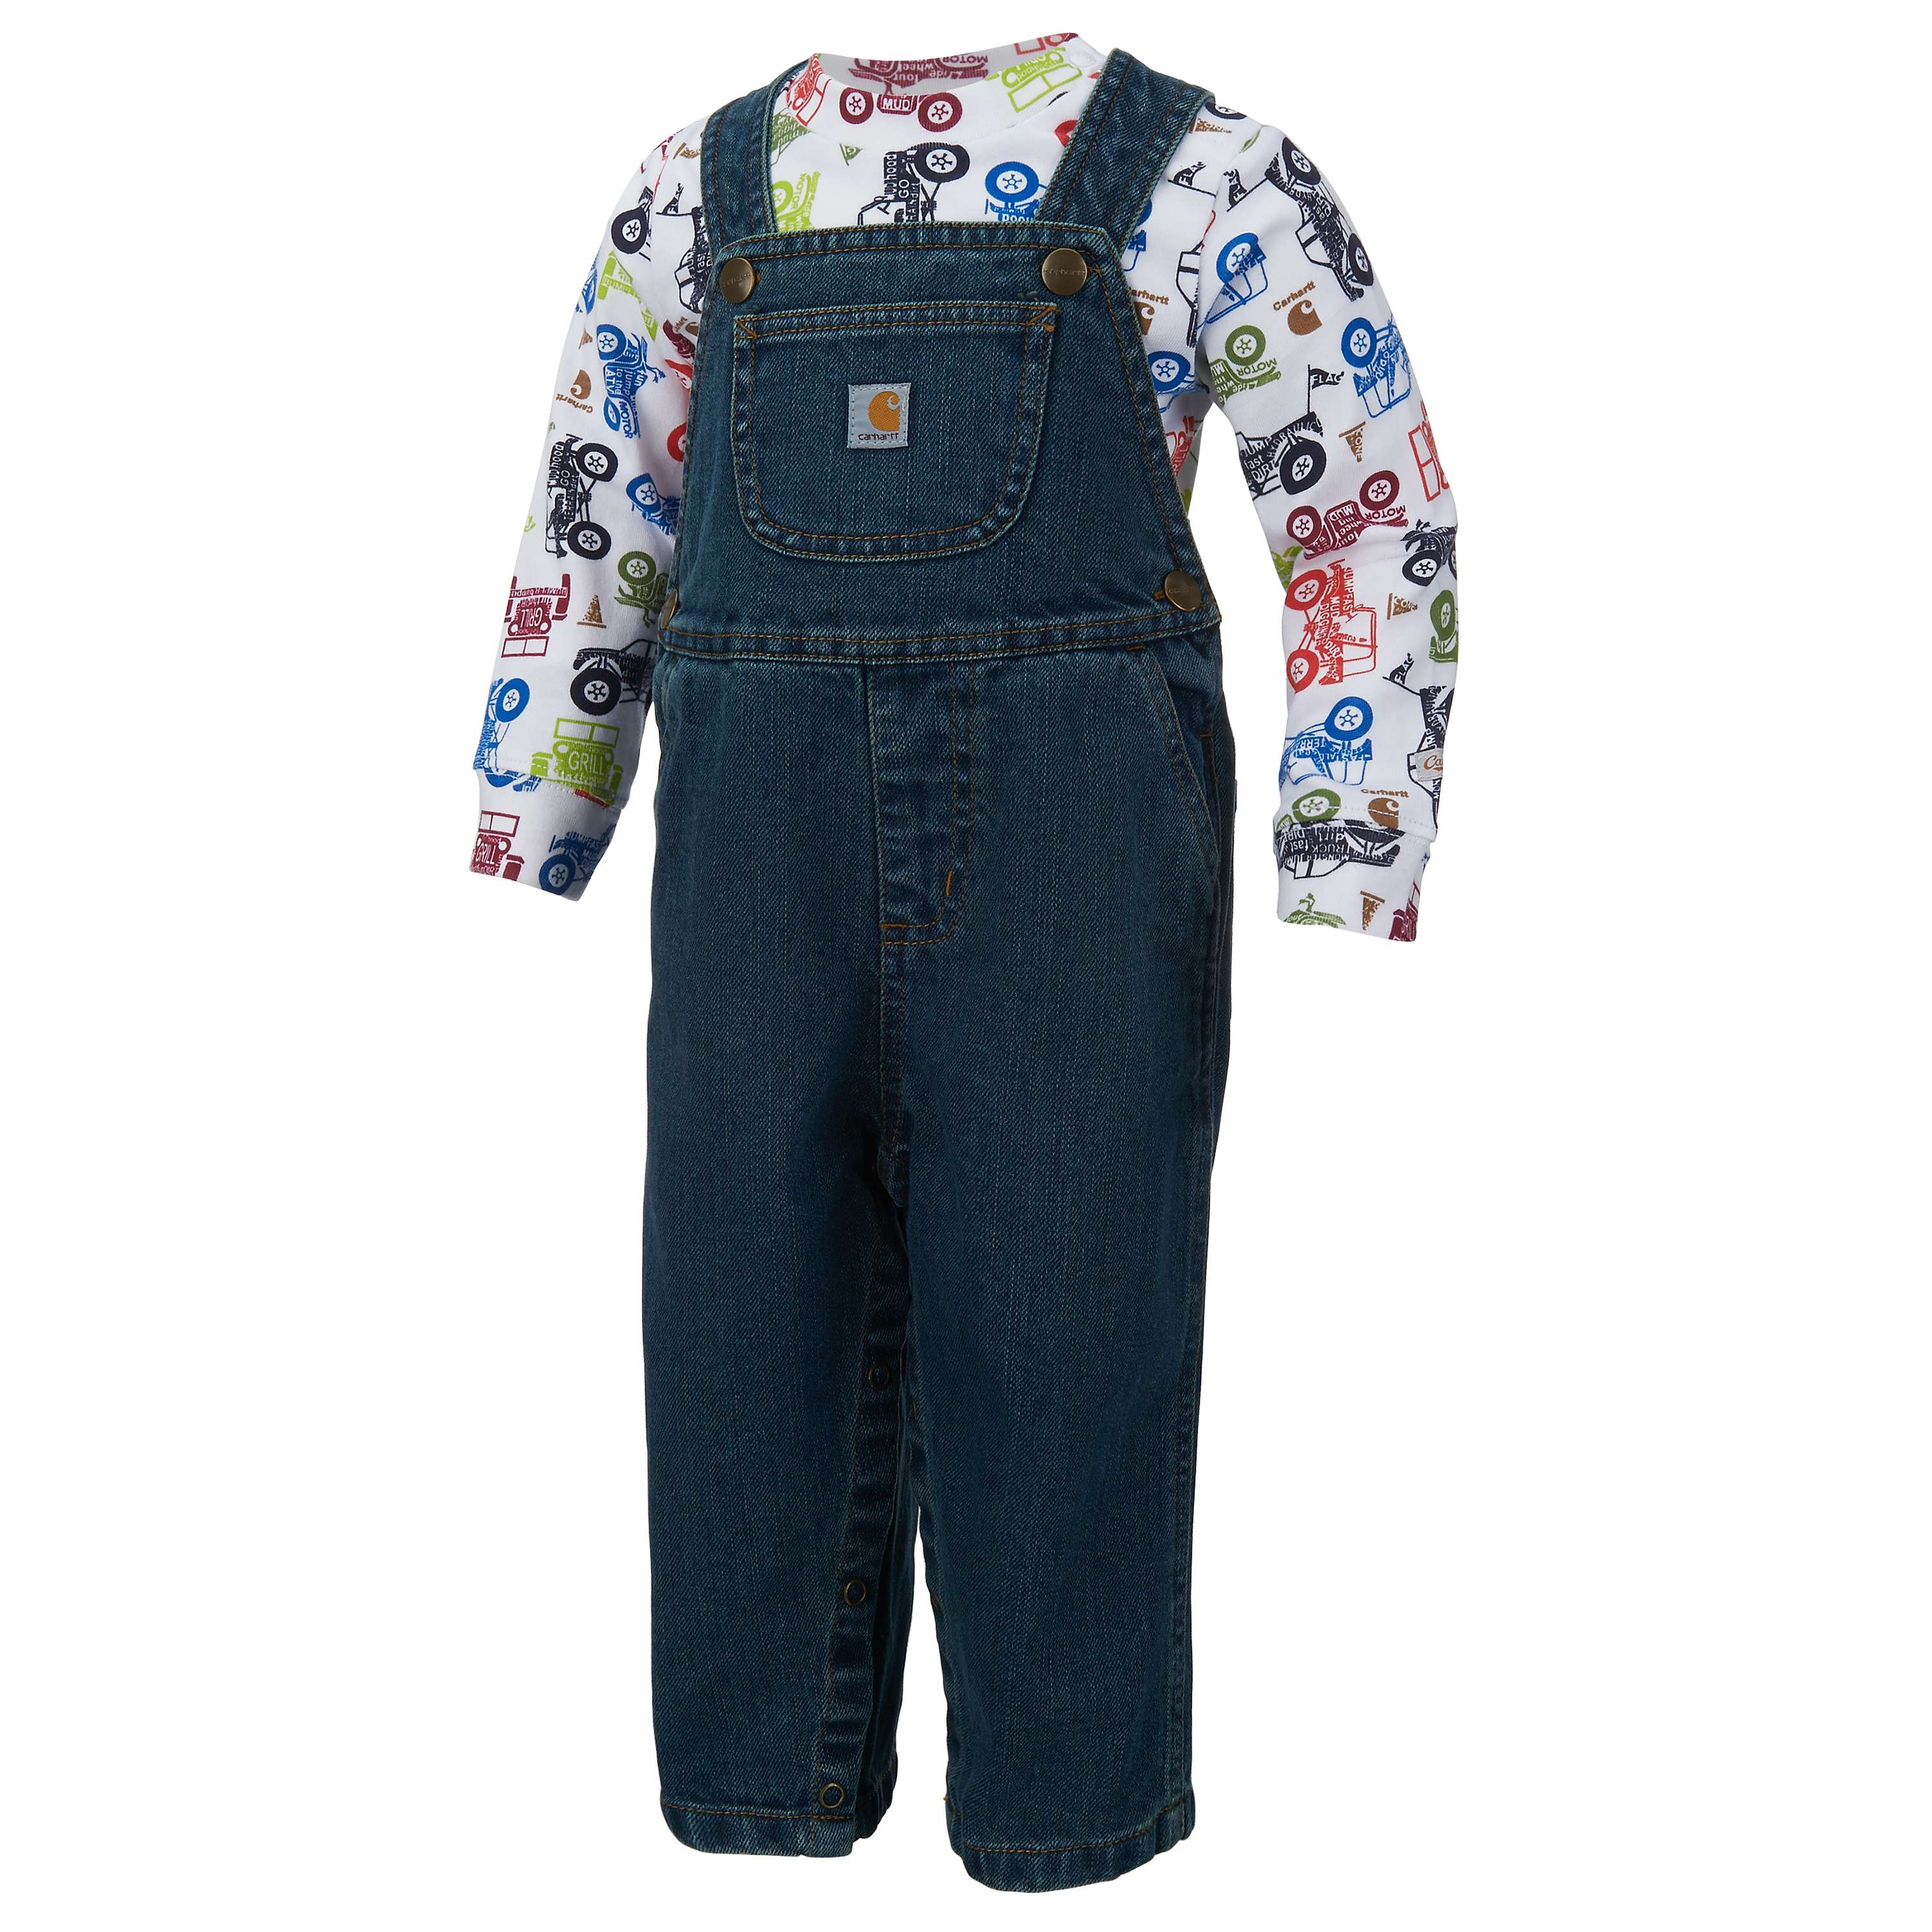 Carhartt Vehicle Overall Set